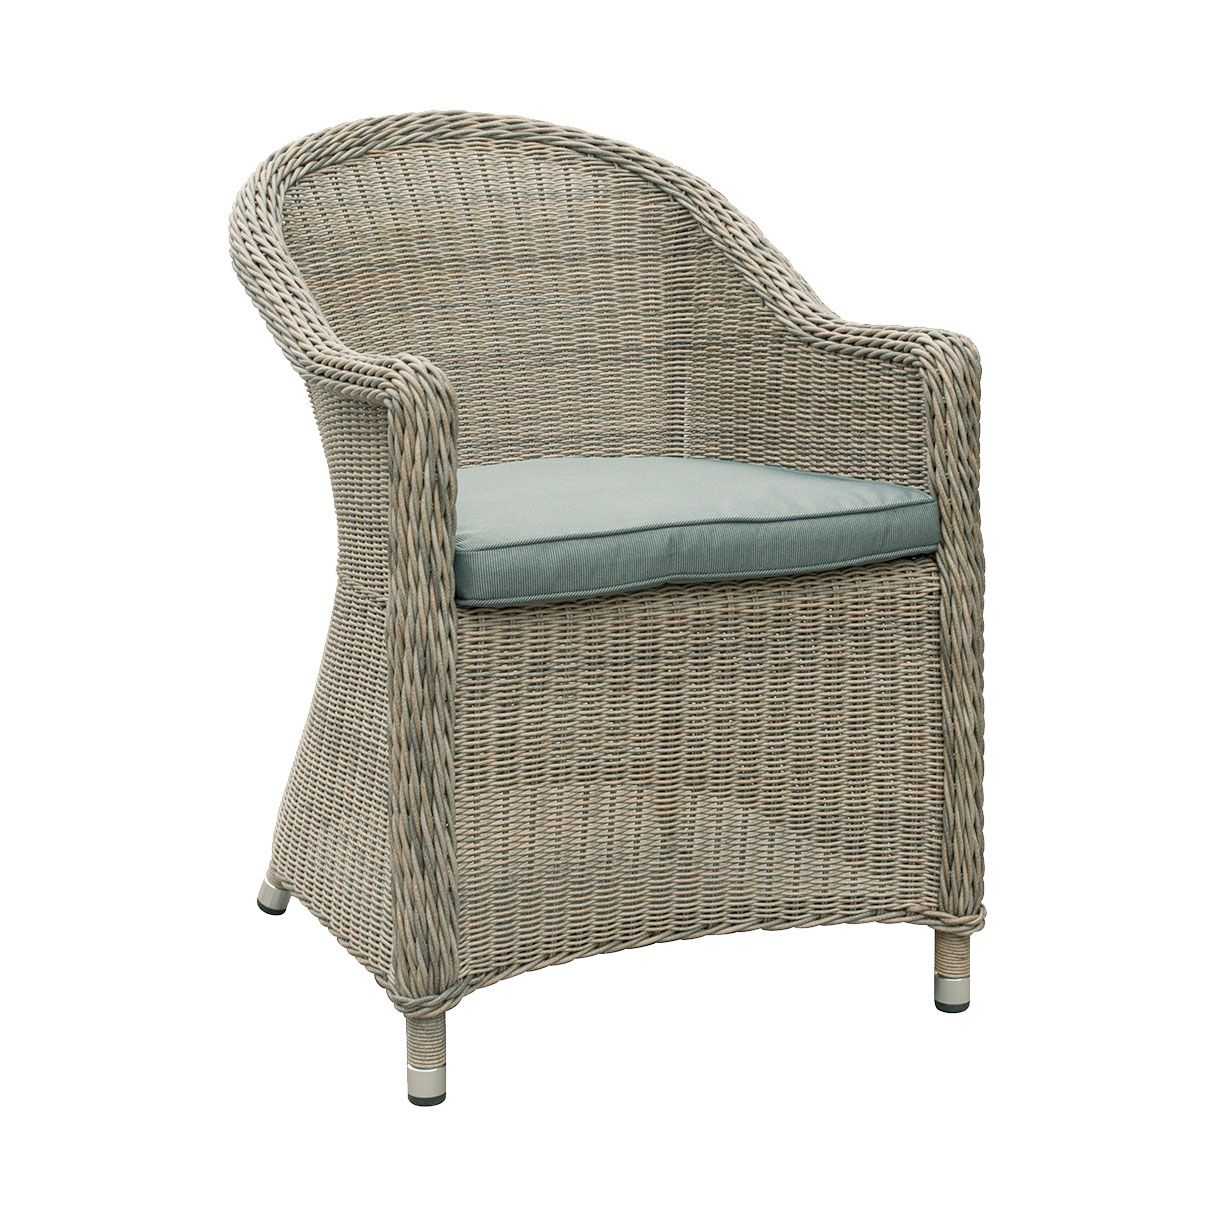 Oseasons hampton rattan arm chair with round back in chic